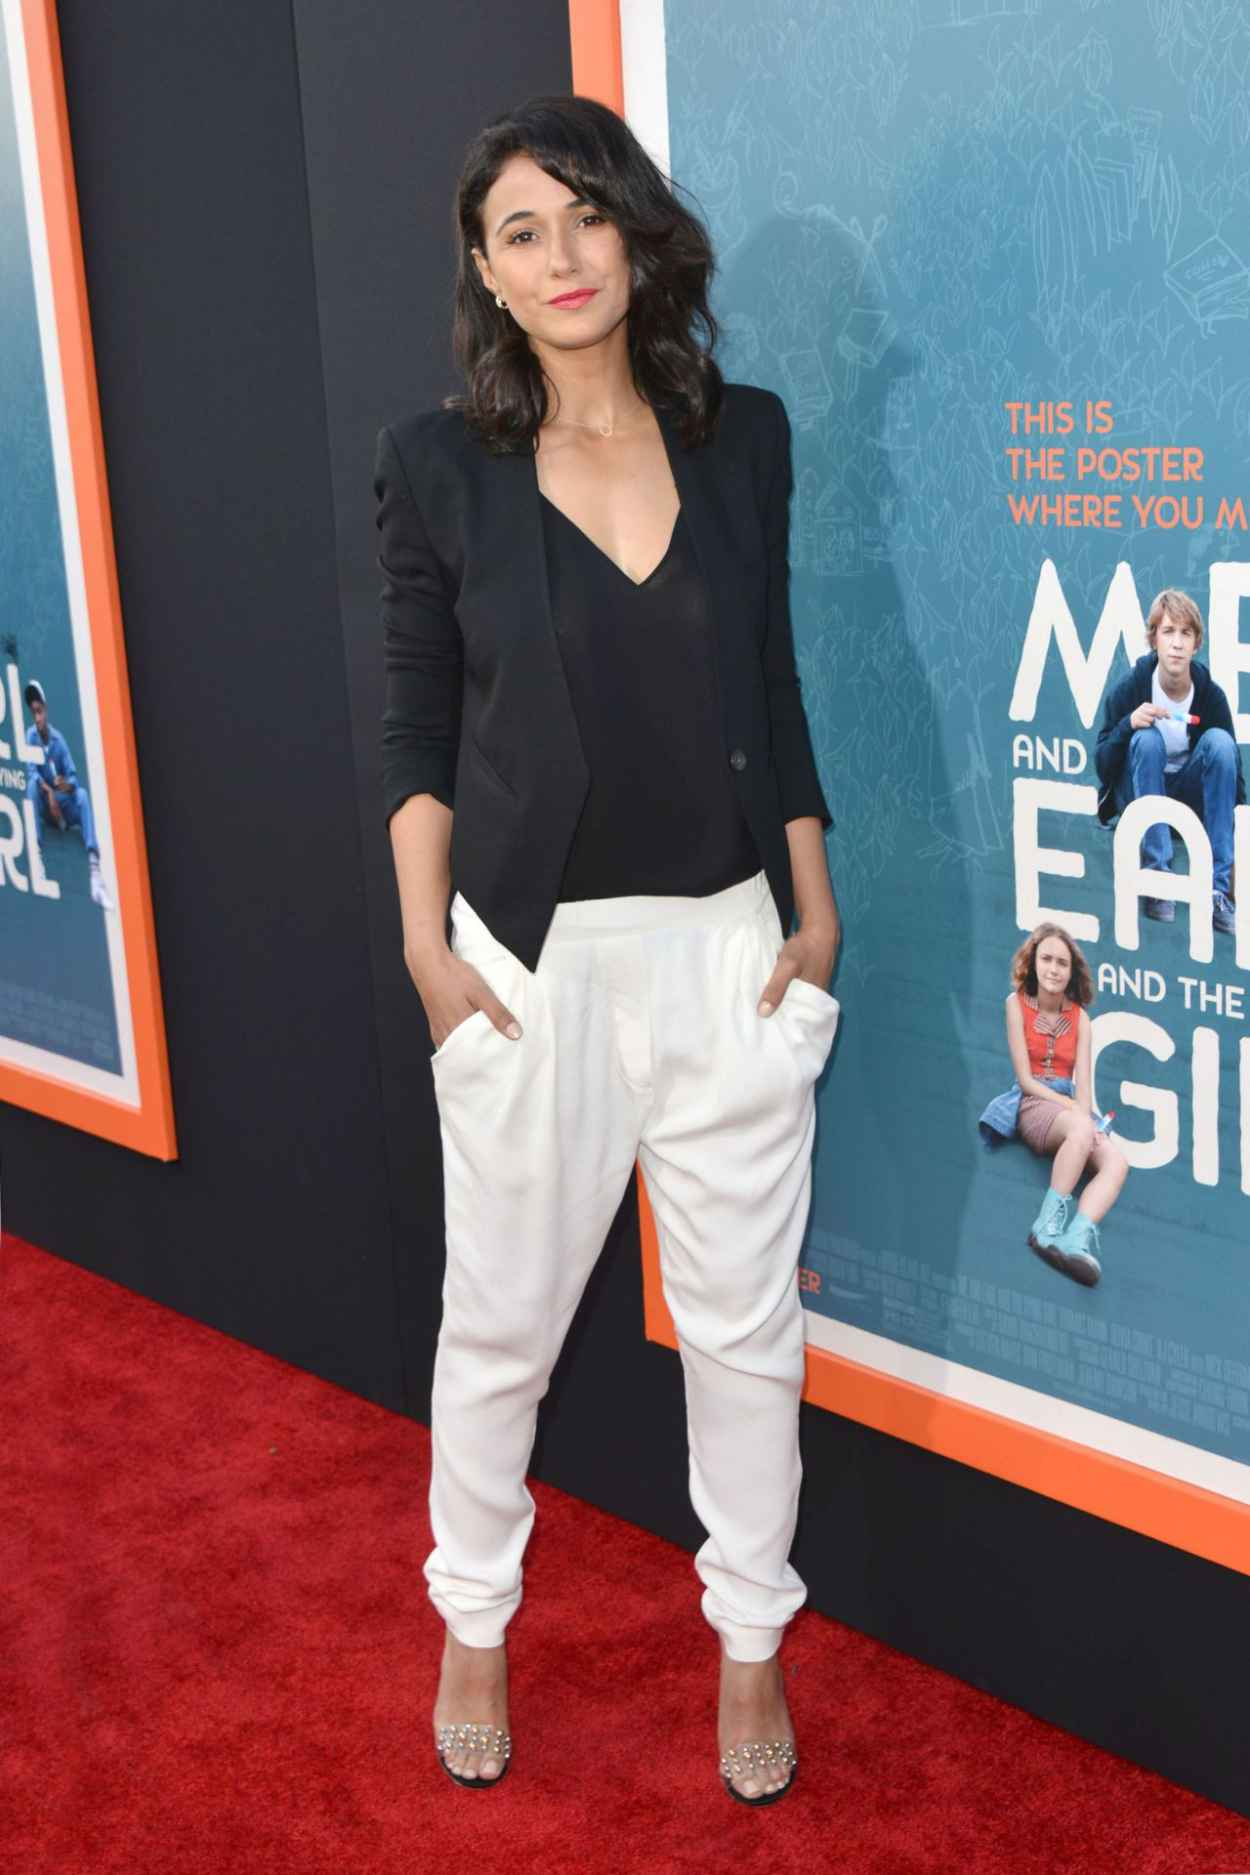 Emmanuelle Chriqui - Me & Earl & the Dying Girl Premiere in Los Angeles-5